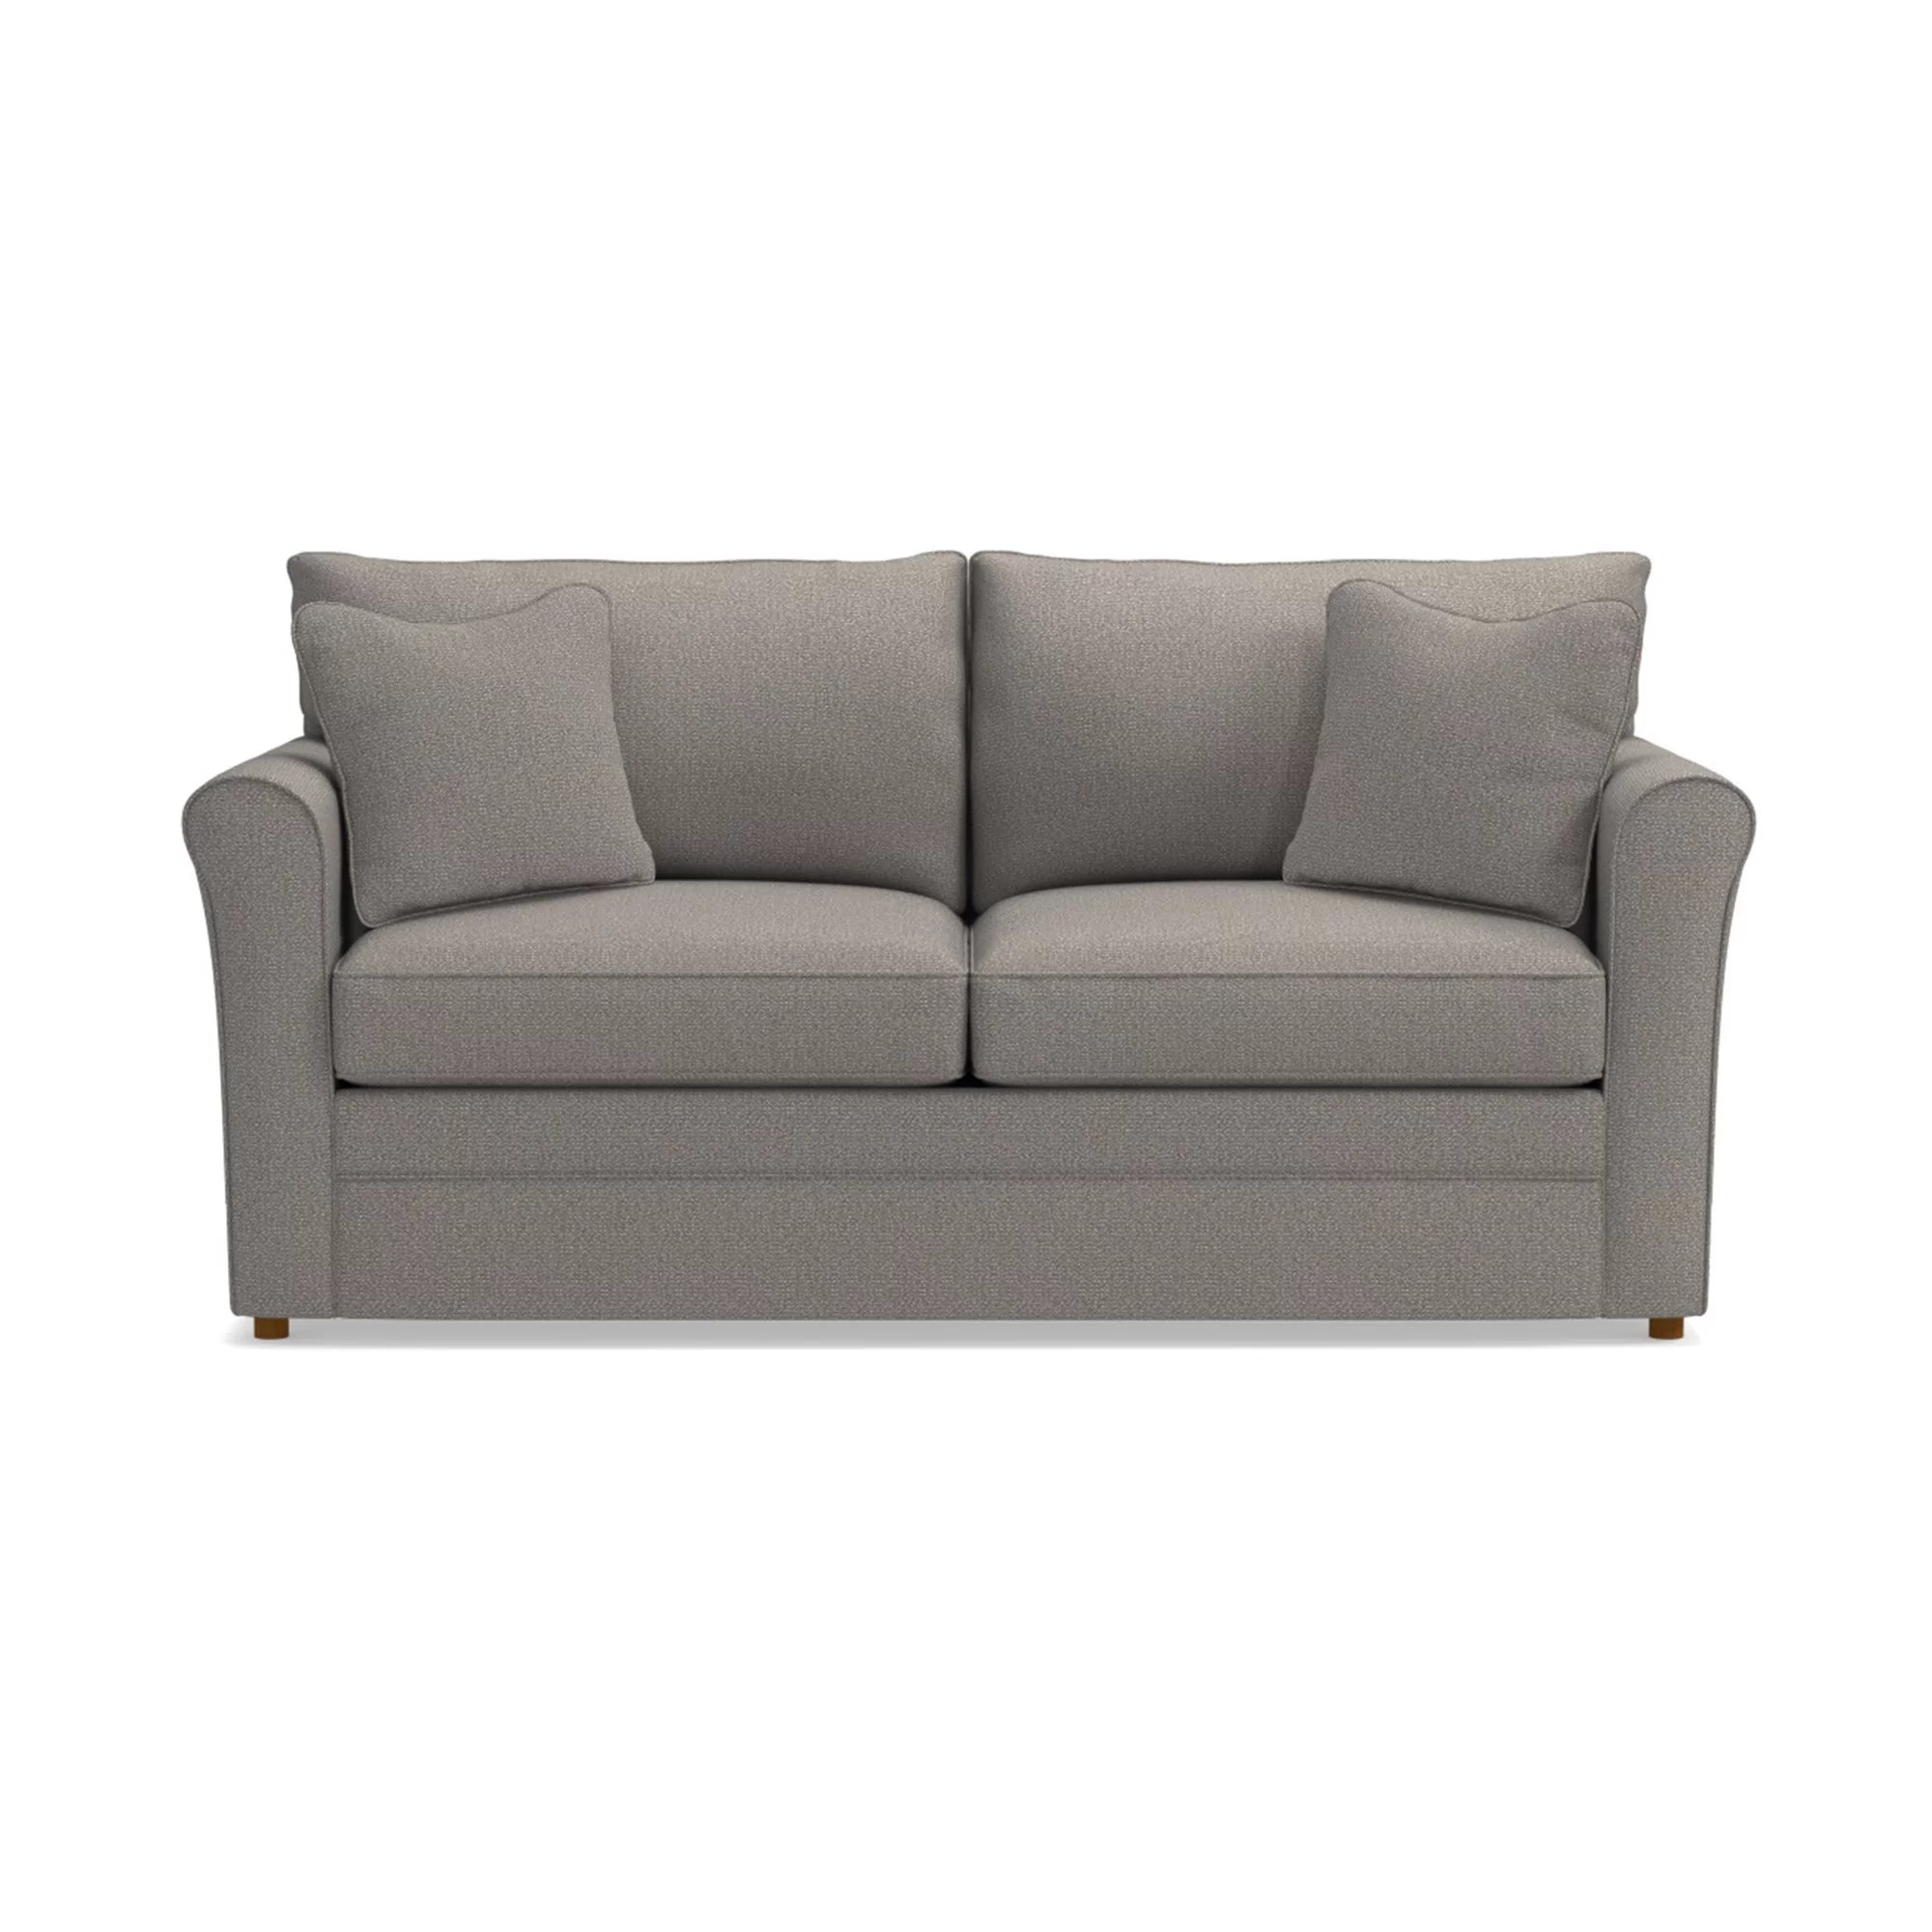 Sofa Repair Charlotte Nc Leah Supreme Comfort Sofa Bed